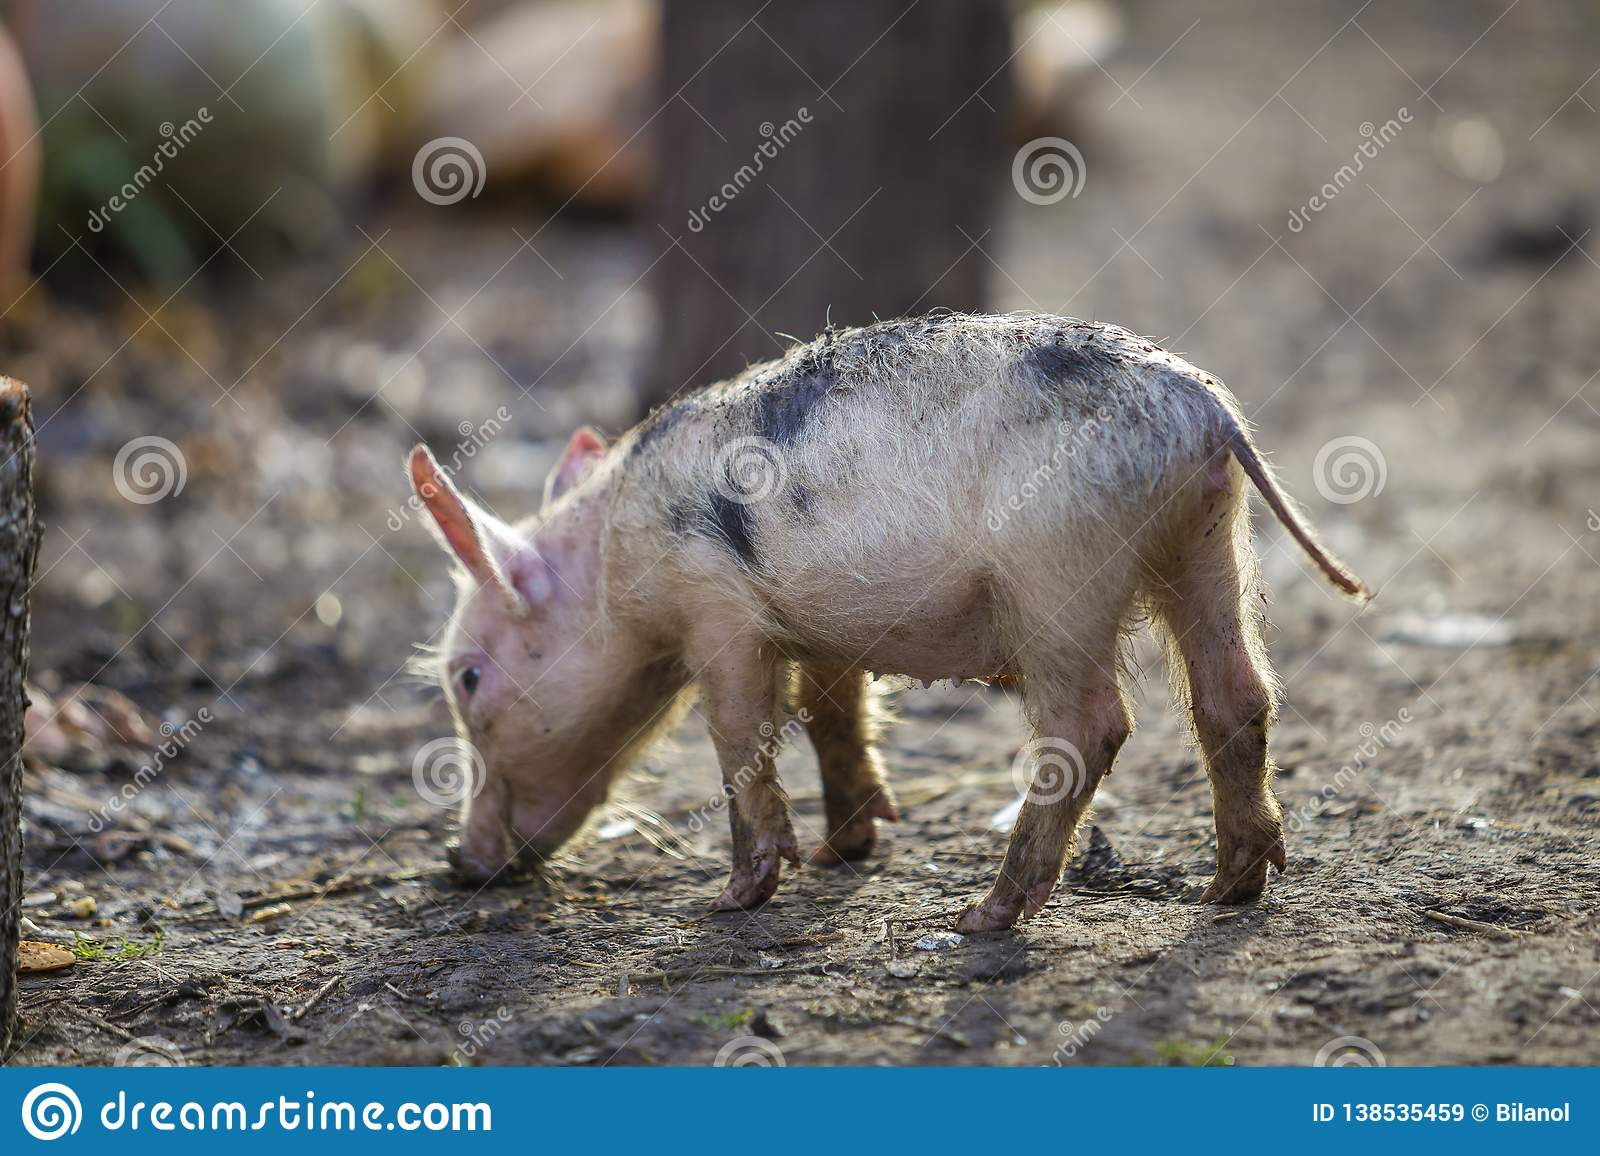 Small young funny dirty pink and black pig piglet standing outdoors on sunny farmyard. Sow farming, natural food production